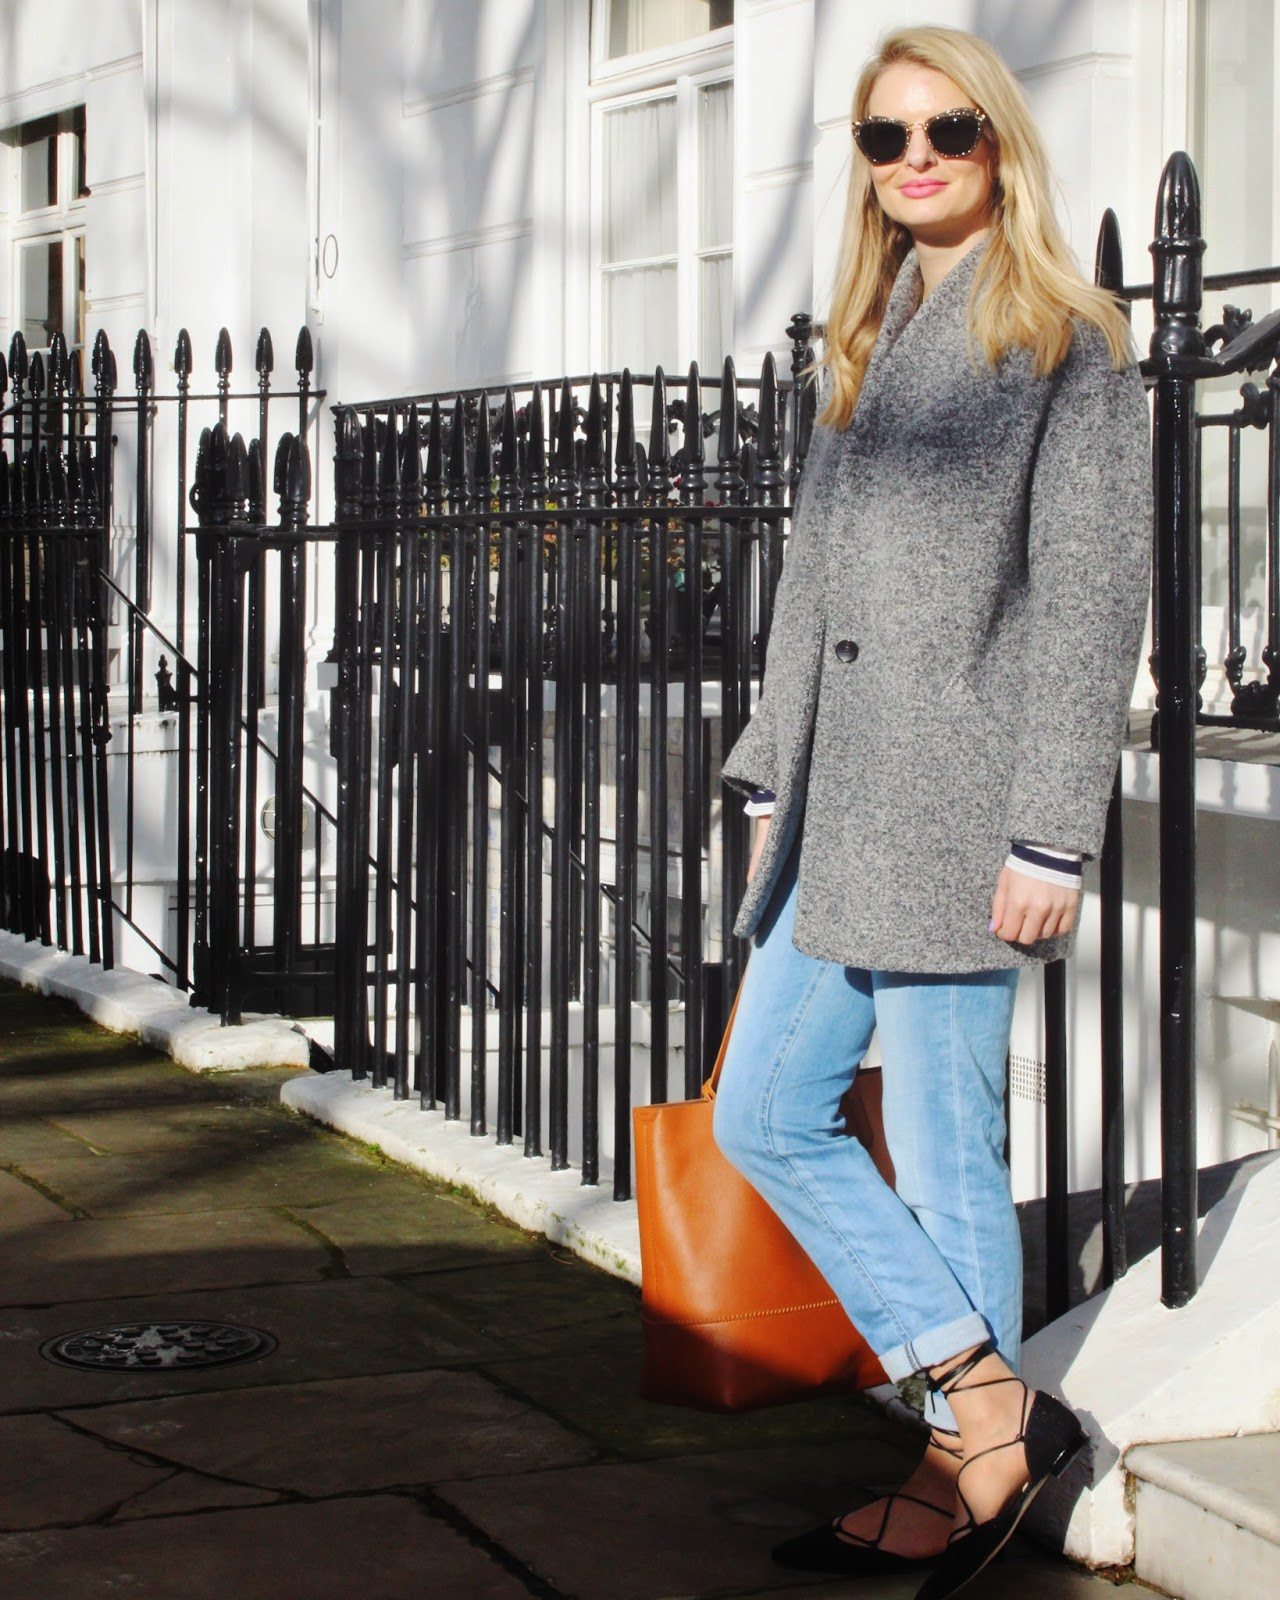 grey coat, accessoryfix, j crew tote, j crew tote bag, russell and bromley, stuart weitzman, iro coat, boyfriend jeans